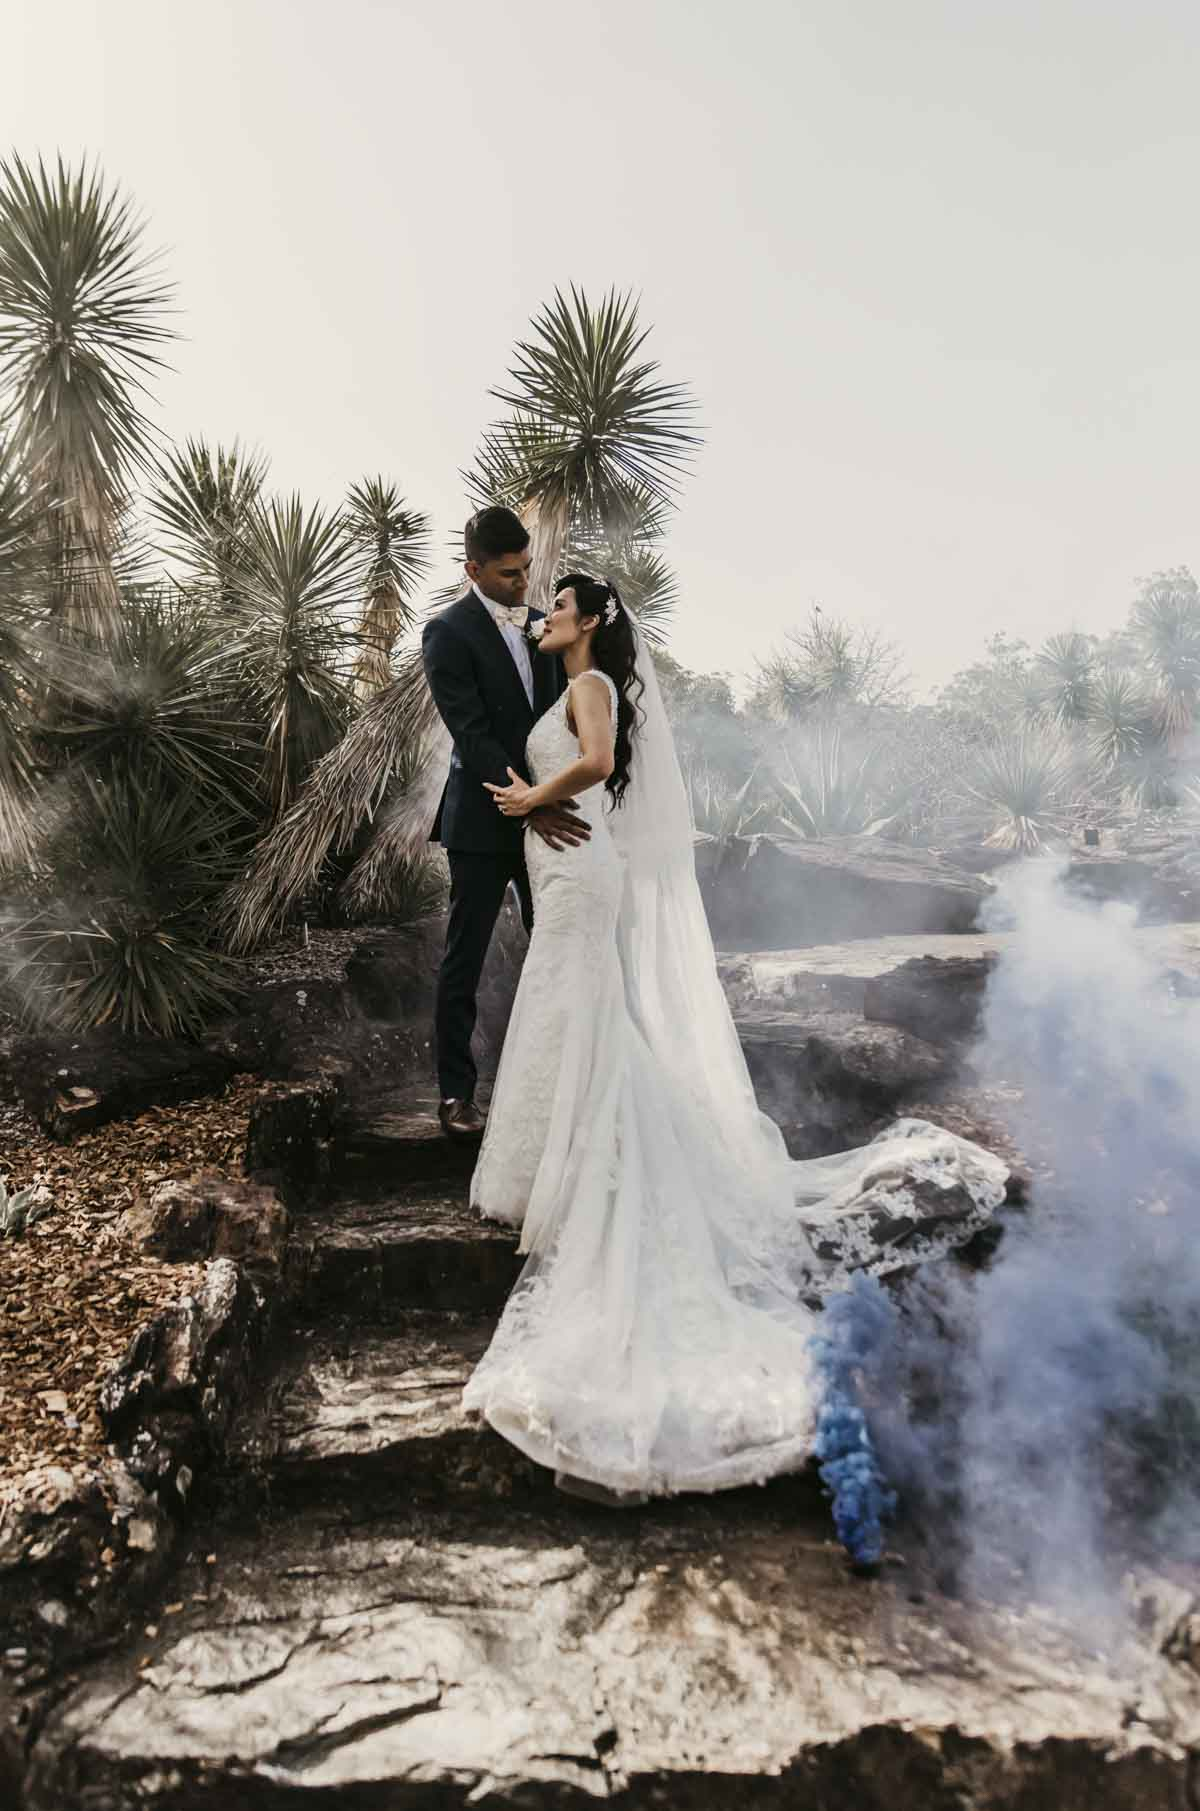 Shay and Uppi's modern and romantic fusion Indian wedding in Brisbane, Australia captured by Sal Singh Photography.